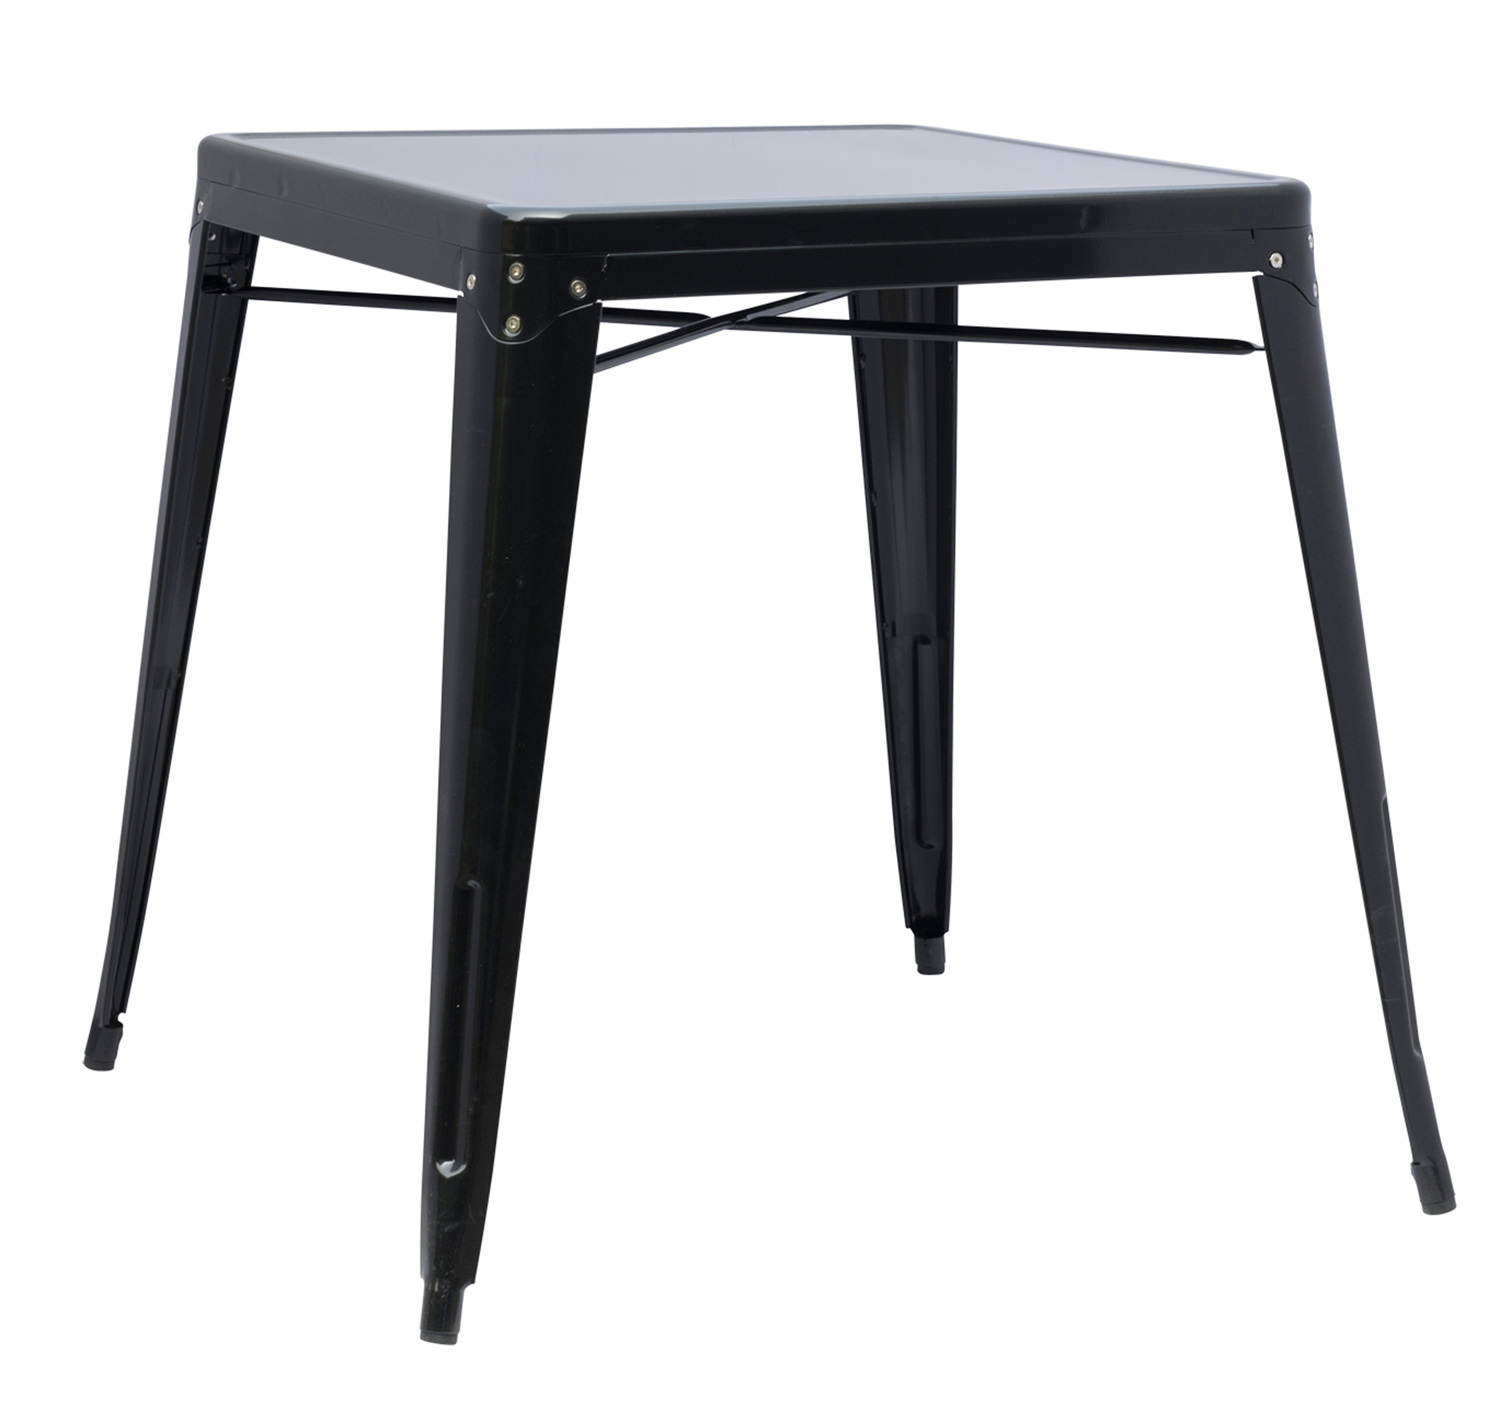 Chintaly Imports 8029 Galvanized Steel Dining Table - Black